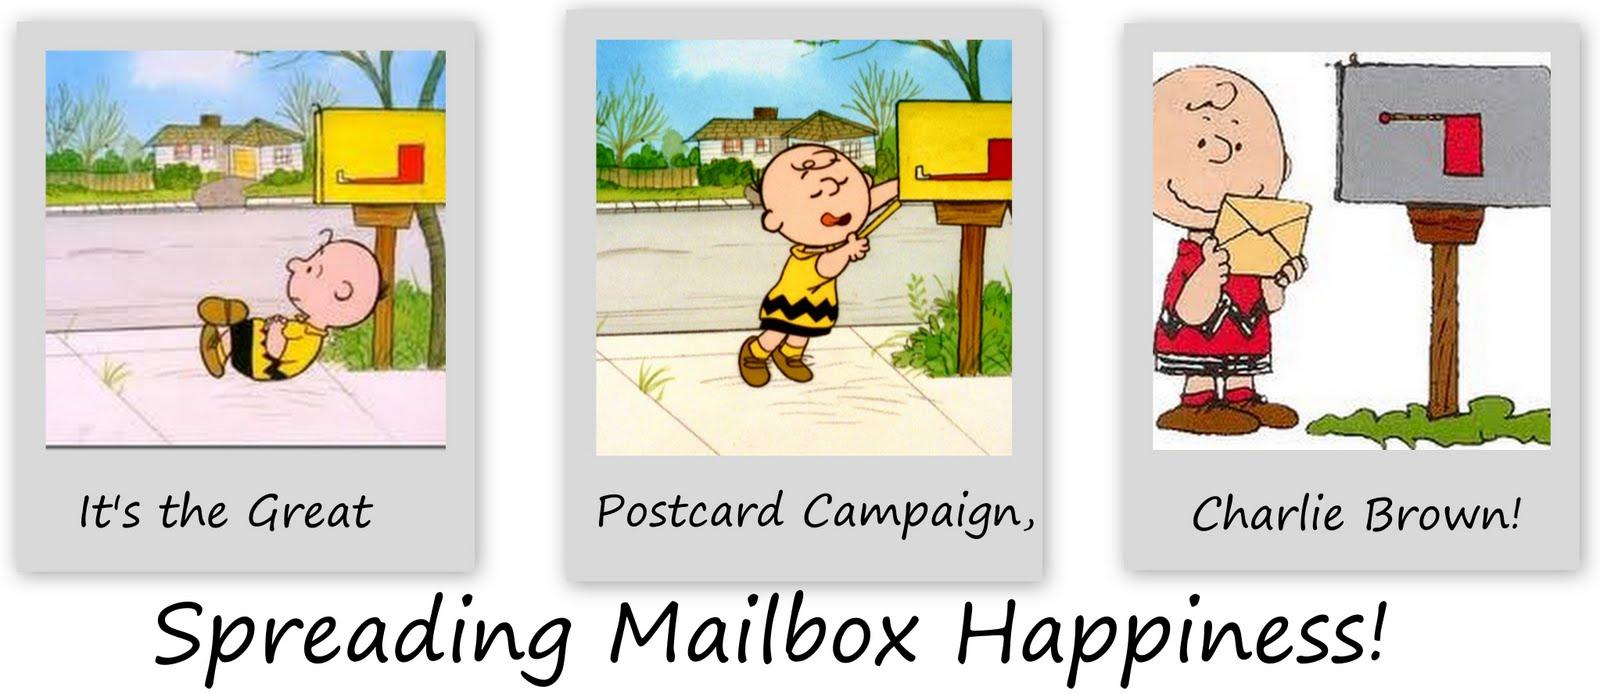 The Great Postcard Campaign